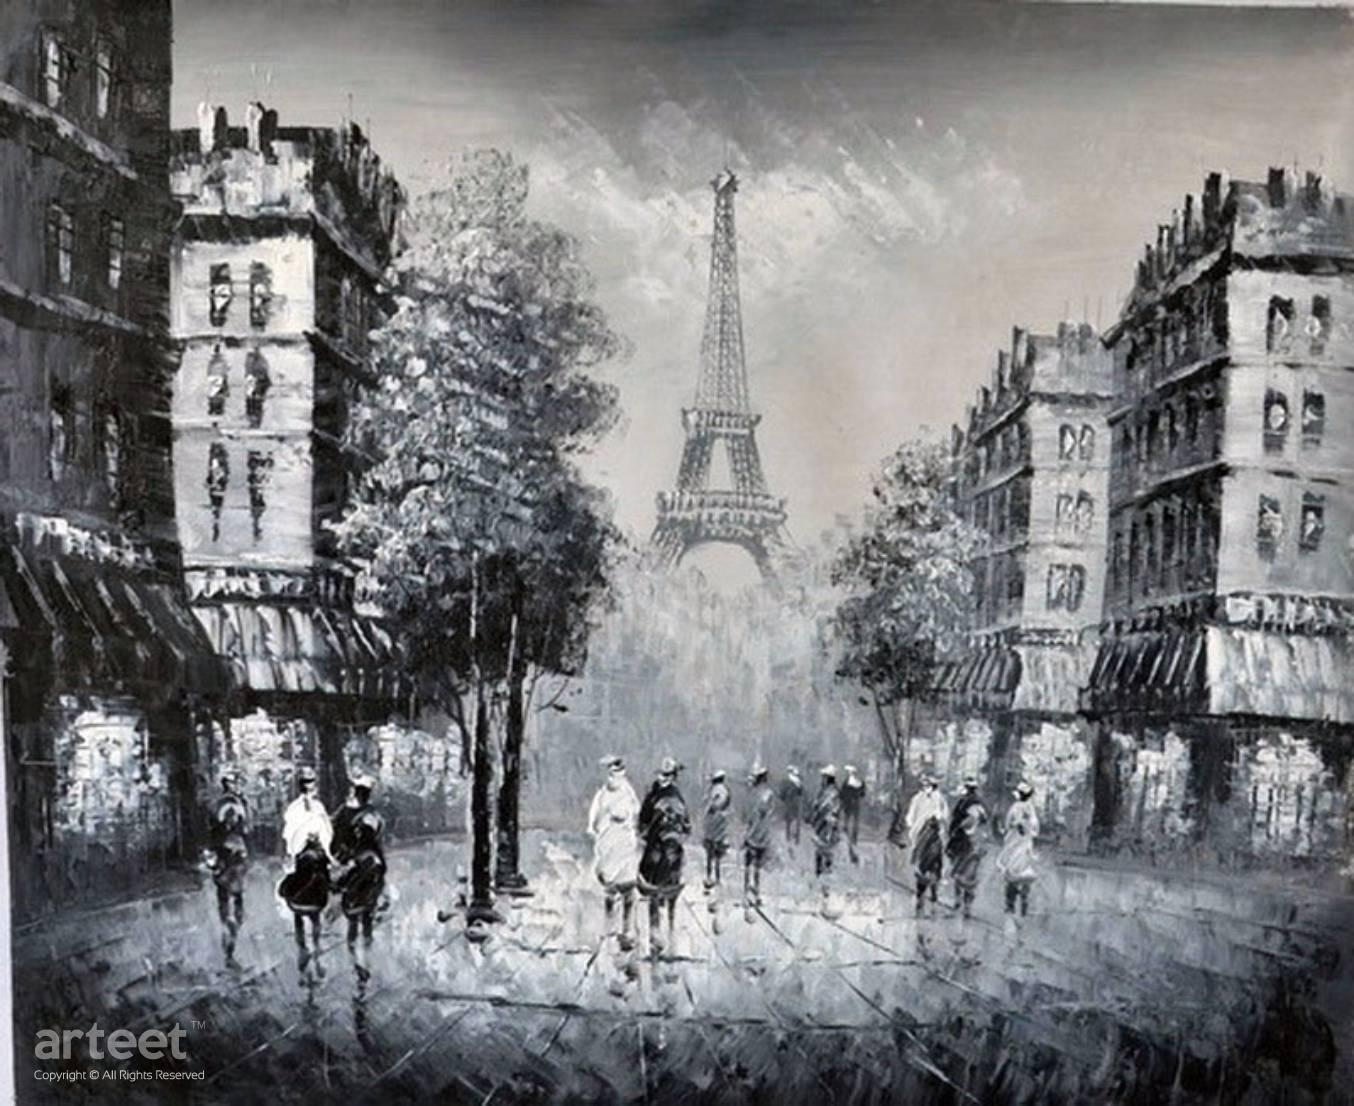 Black and white paris street scene art paintings for sale